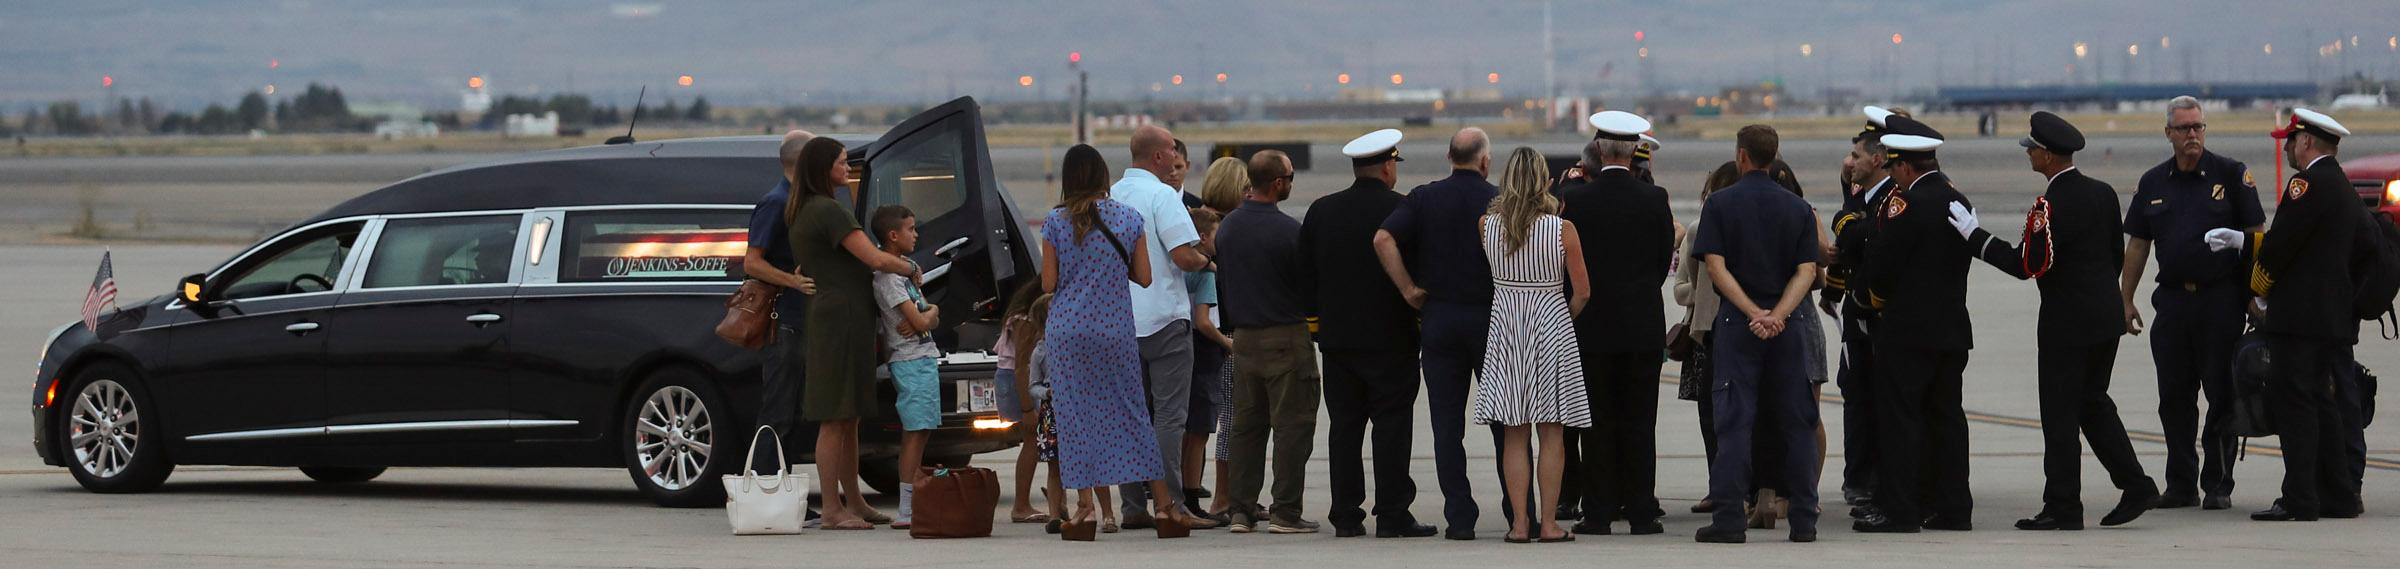 Members of the Draper City Fire Department and Unified Fire Authority Honor Guard stand with family members after the casket of Draper Battalion Chief Matt Burchett is placed in a hearse after being transported from California to Utah in a C130-J by the California Air National Guard. The C130-J landed at the Utah Air National Guard Base in Salt Lake City on Wednesday, Aug. 15, 2018. Burchett was killed while fighting the Mendocino Complex Fire north of San Francisco.